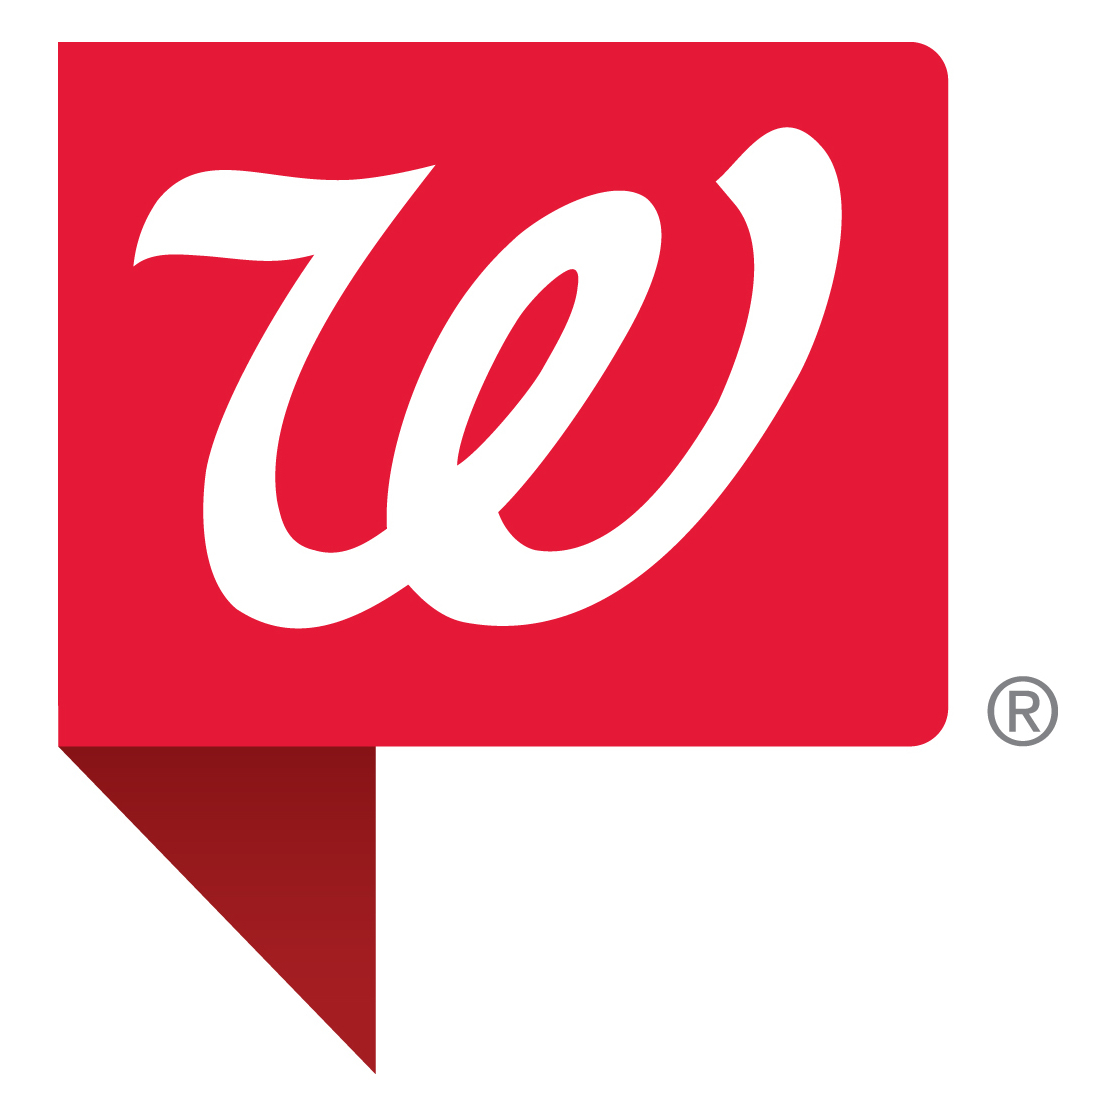 Walgreens - Cranberry Township, PA - Pharmacist